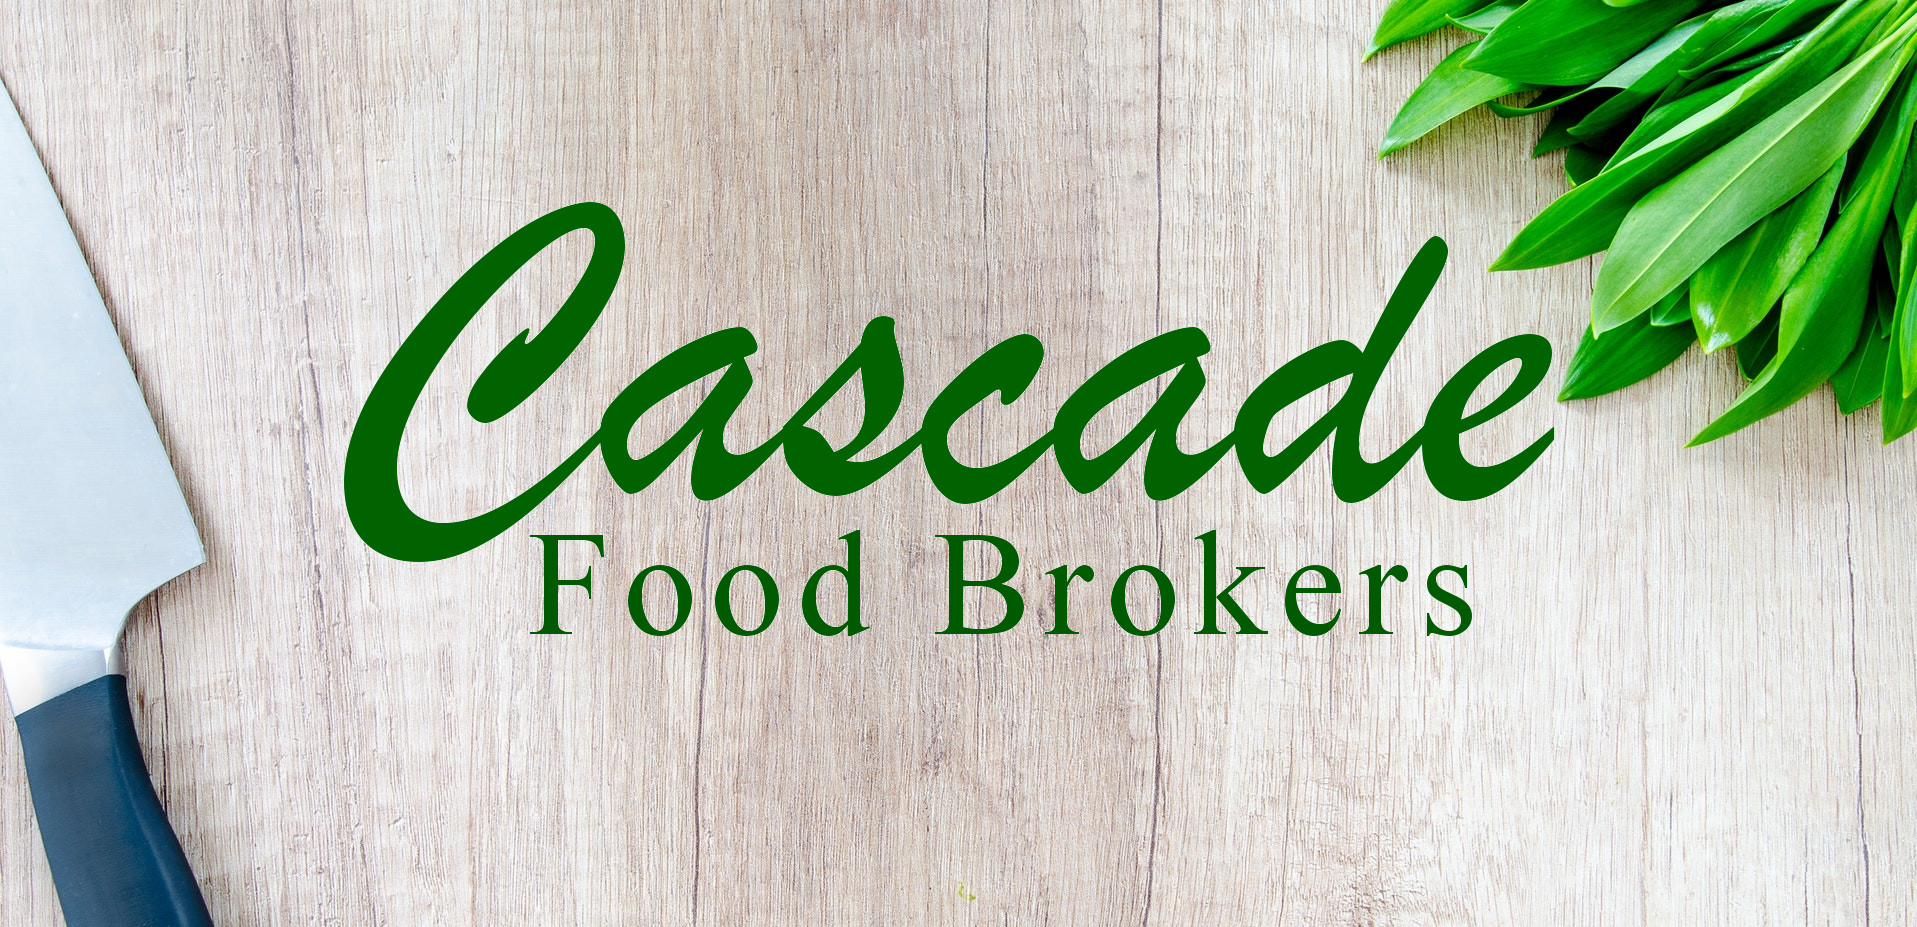 Cutting Board with cascadefoodbrokers logo